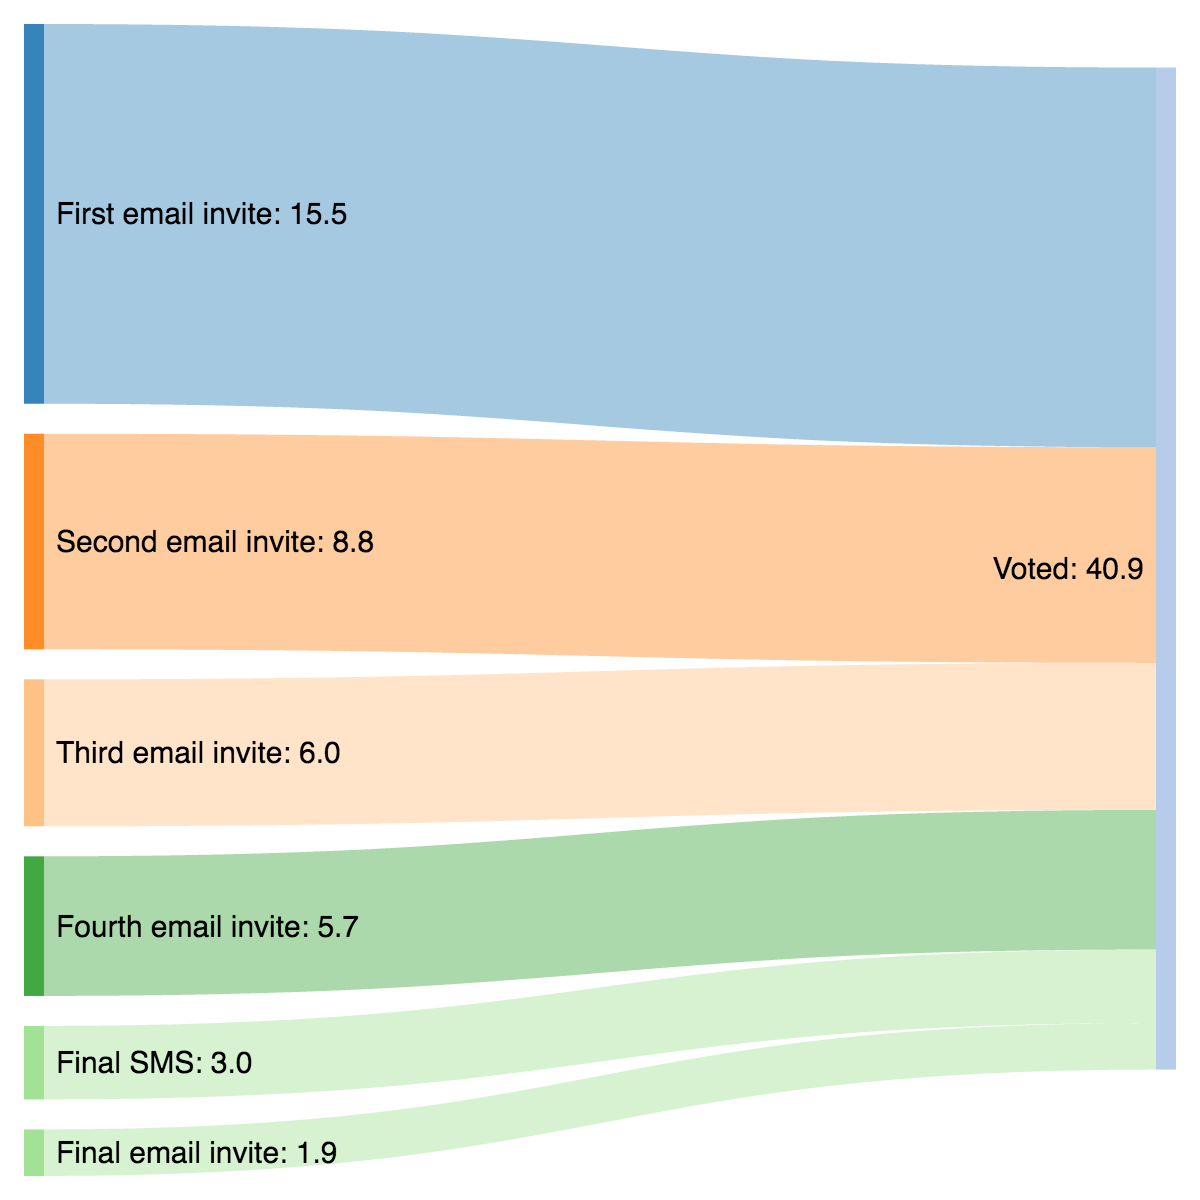 Sankey diagram showing how people were prompted to vote